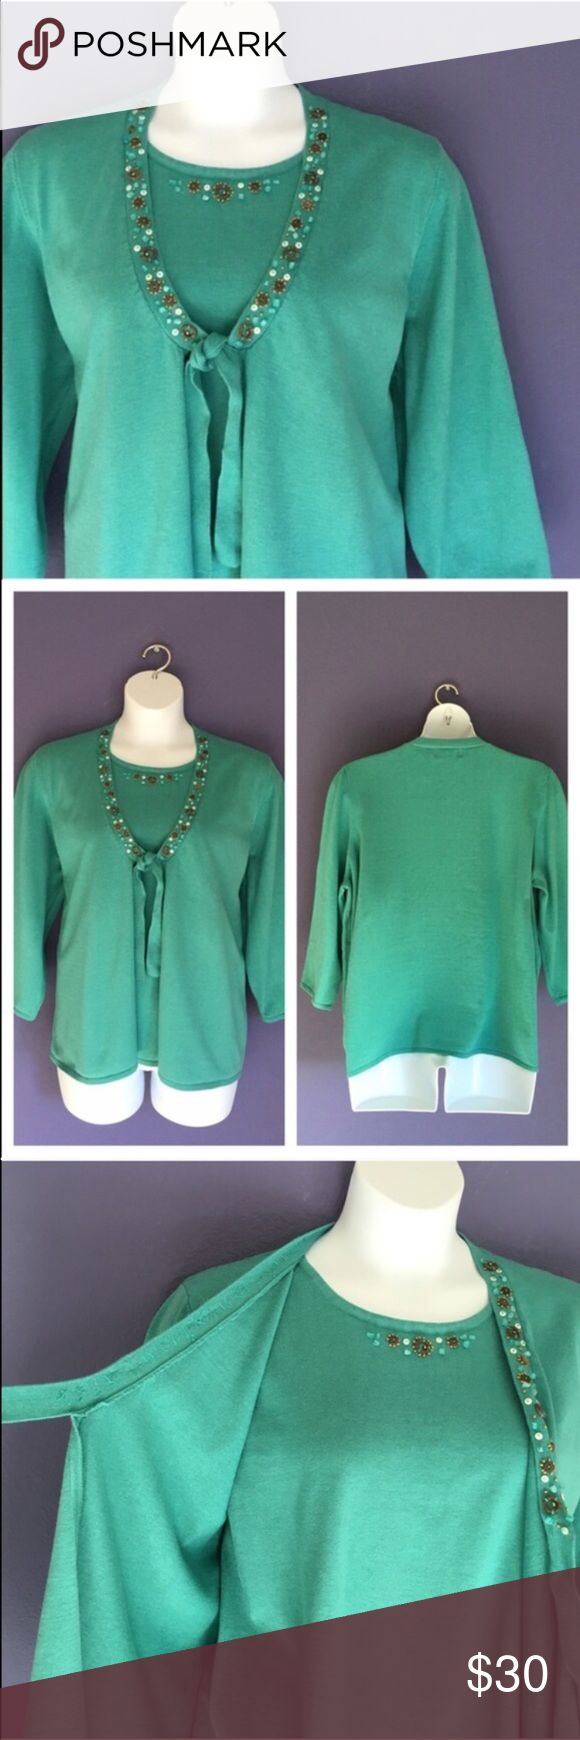 "Alfred Dunner Embellished Sweater This sweater looks like 2 pieces, but is actually one piece (see picture # 3). The embellishments add pop to the gorgeous seafoam green color.   Perfect for any occasion.  Pair with jeans for a more casual look. Material:  55% Cotton/45% Acrylic. Measurements:  Length - 27""/Bust - 26""/Waist - 26"" Alfred Dunner Sweaters"